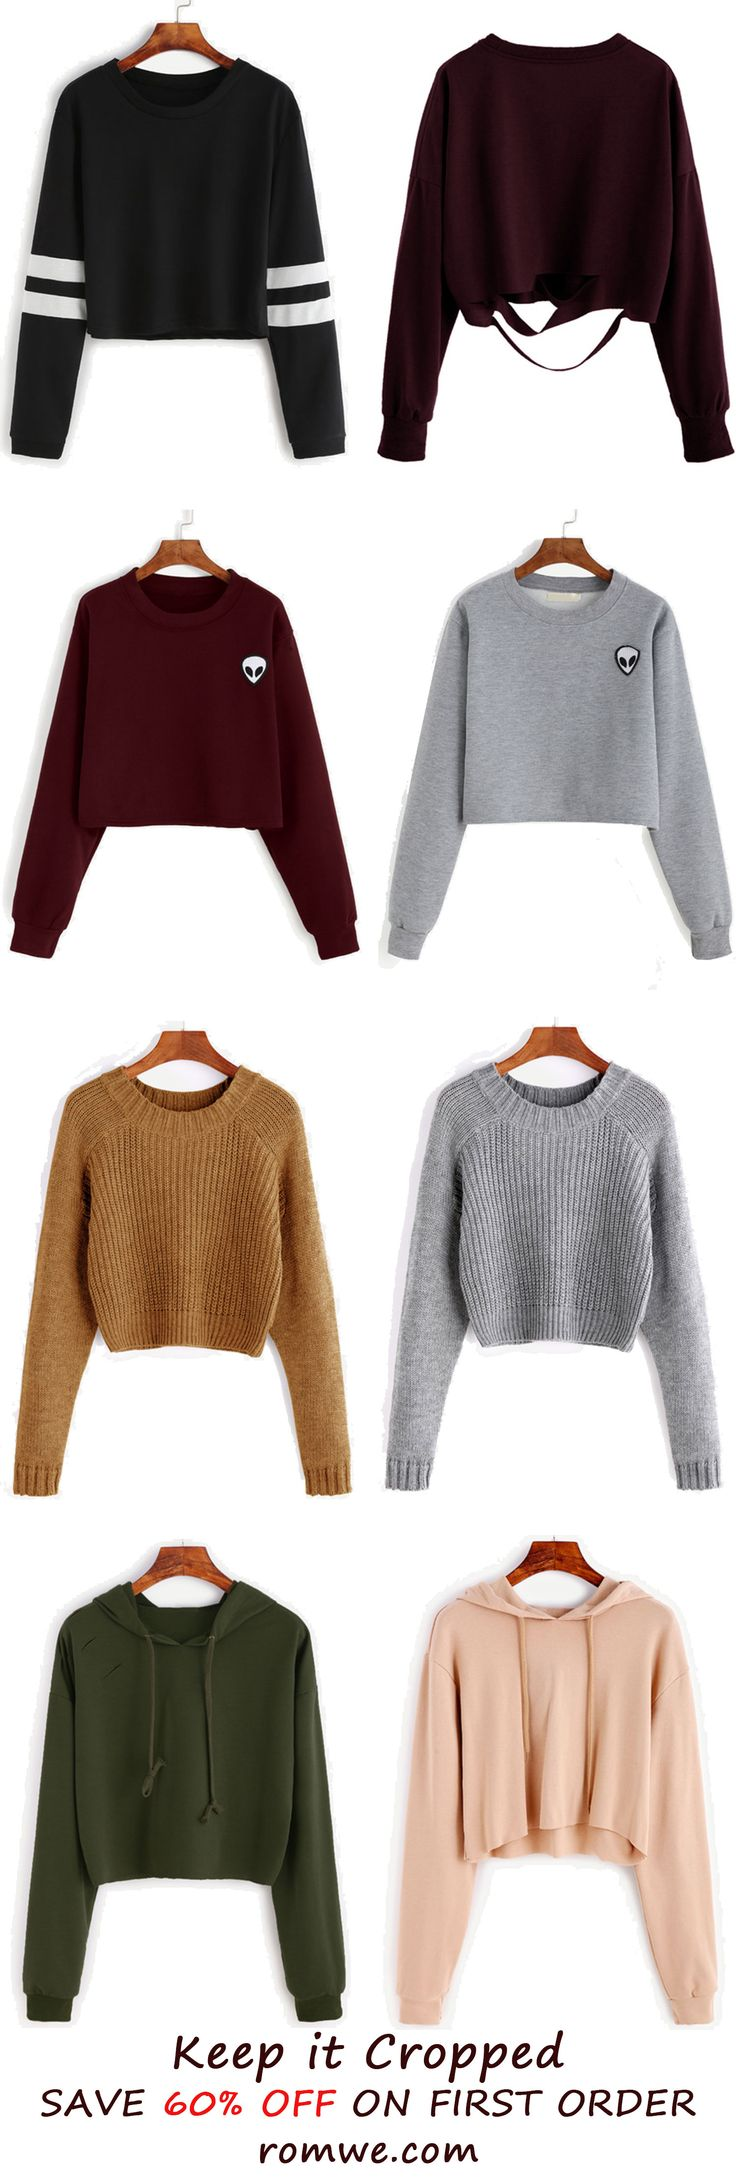 Fall & Winter Crop Tops Collection from romwe.com